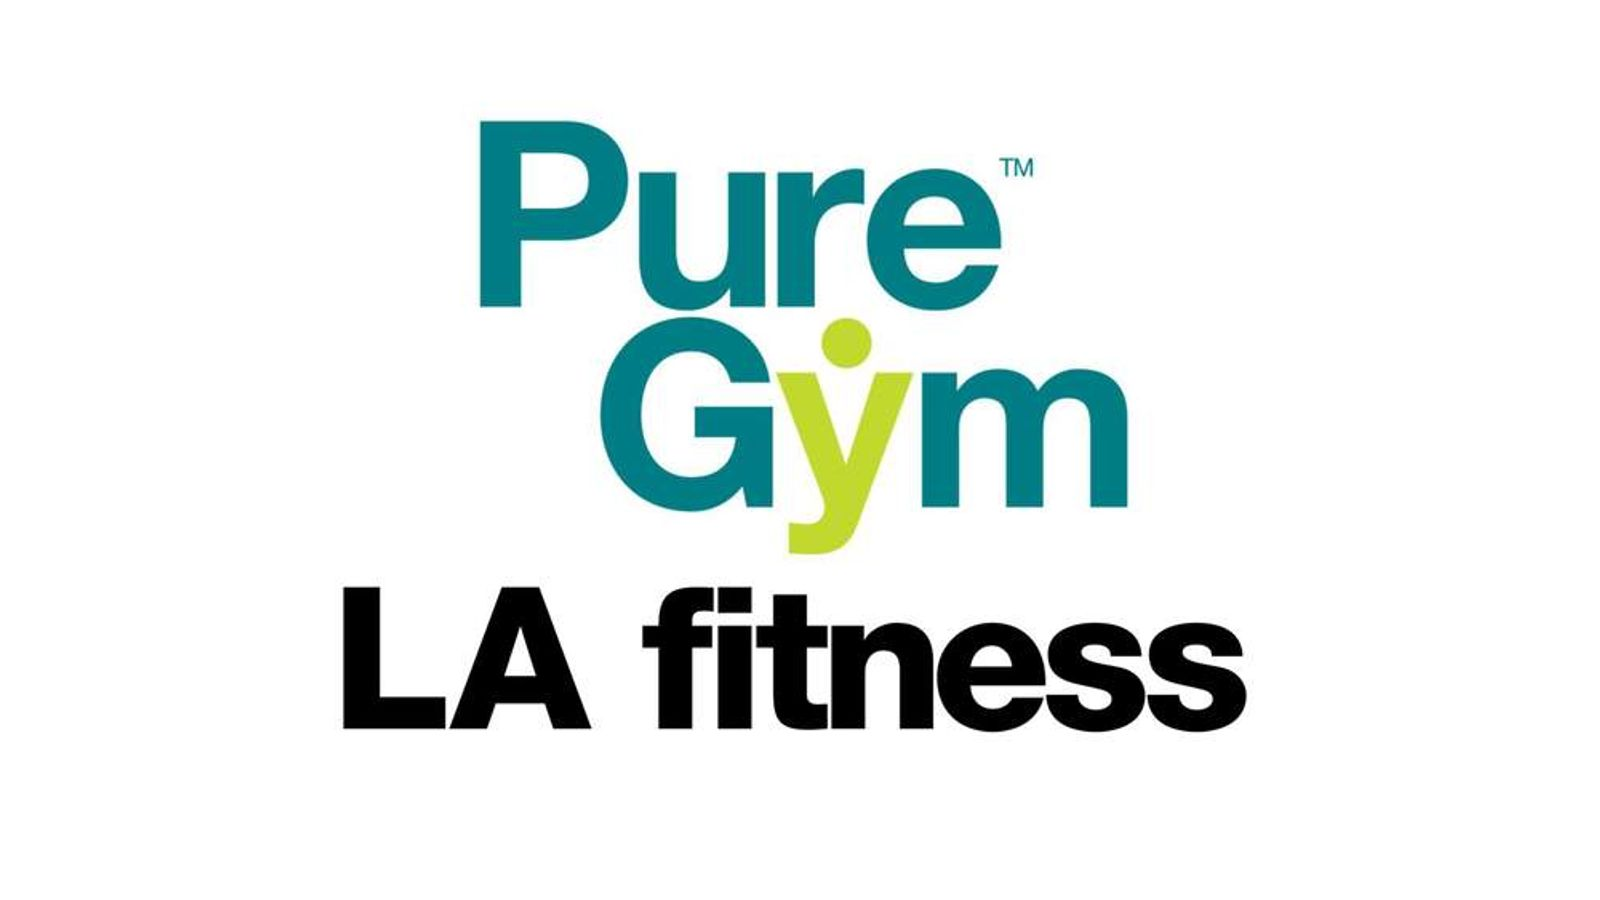 Image result for la fitness pure gym